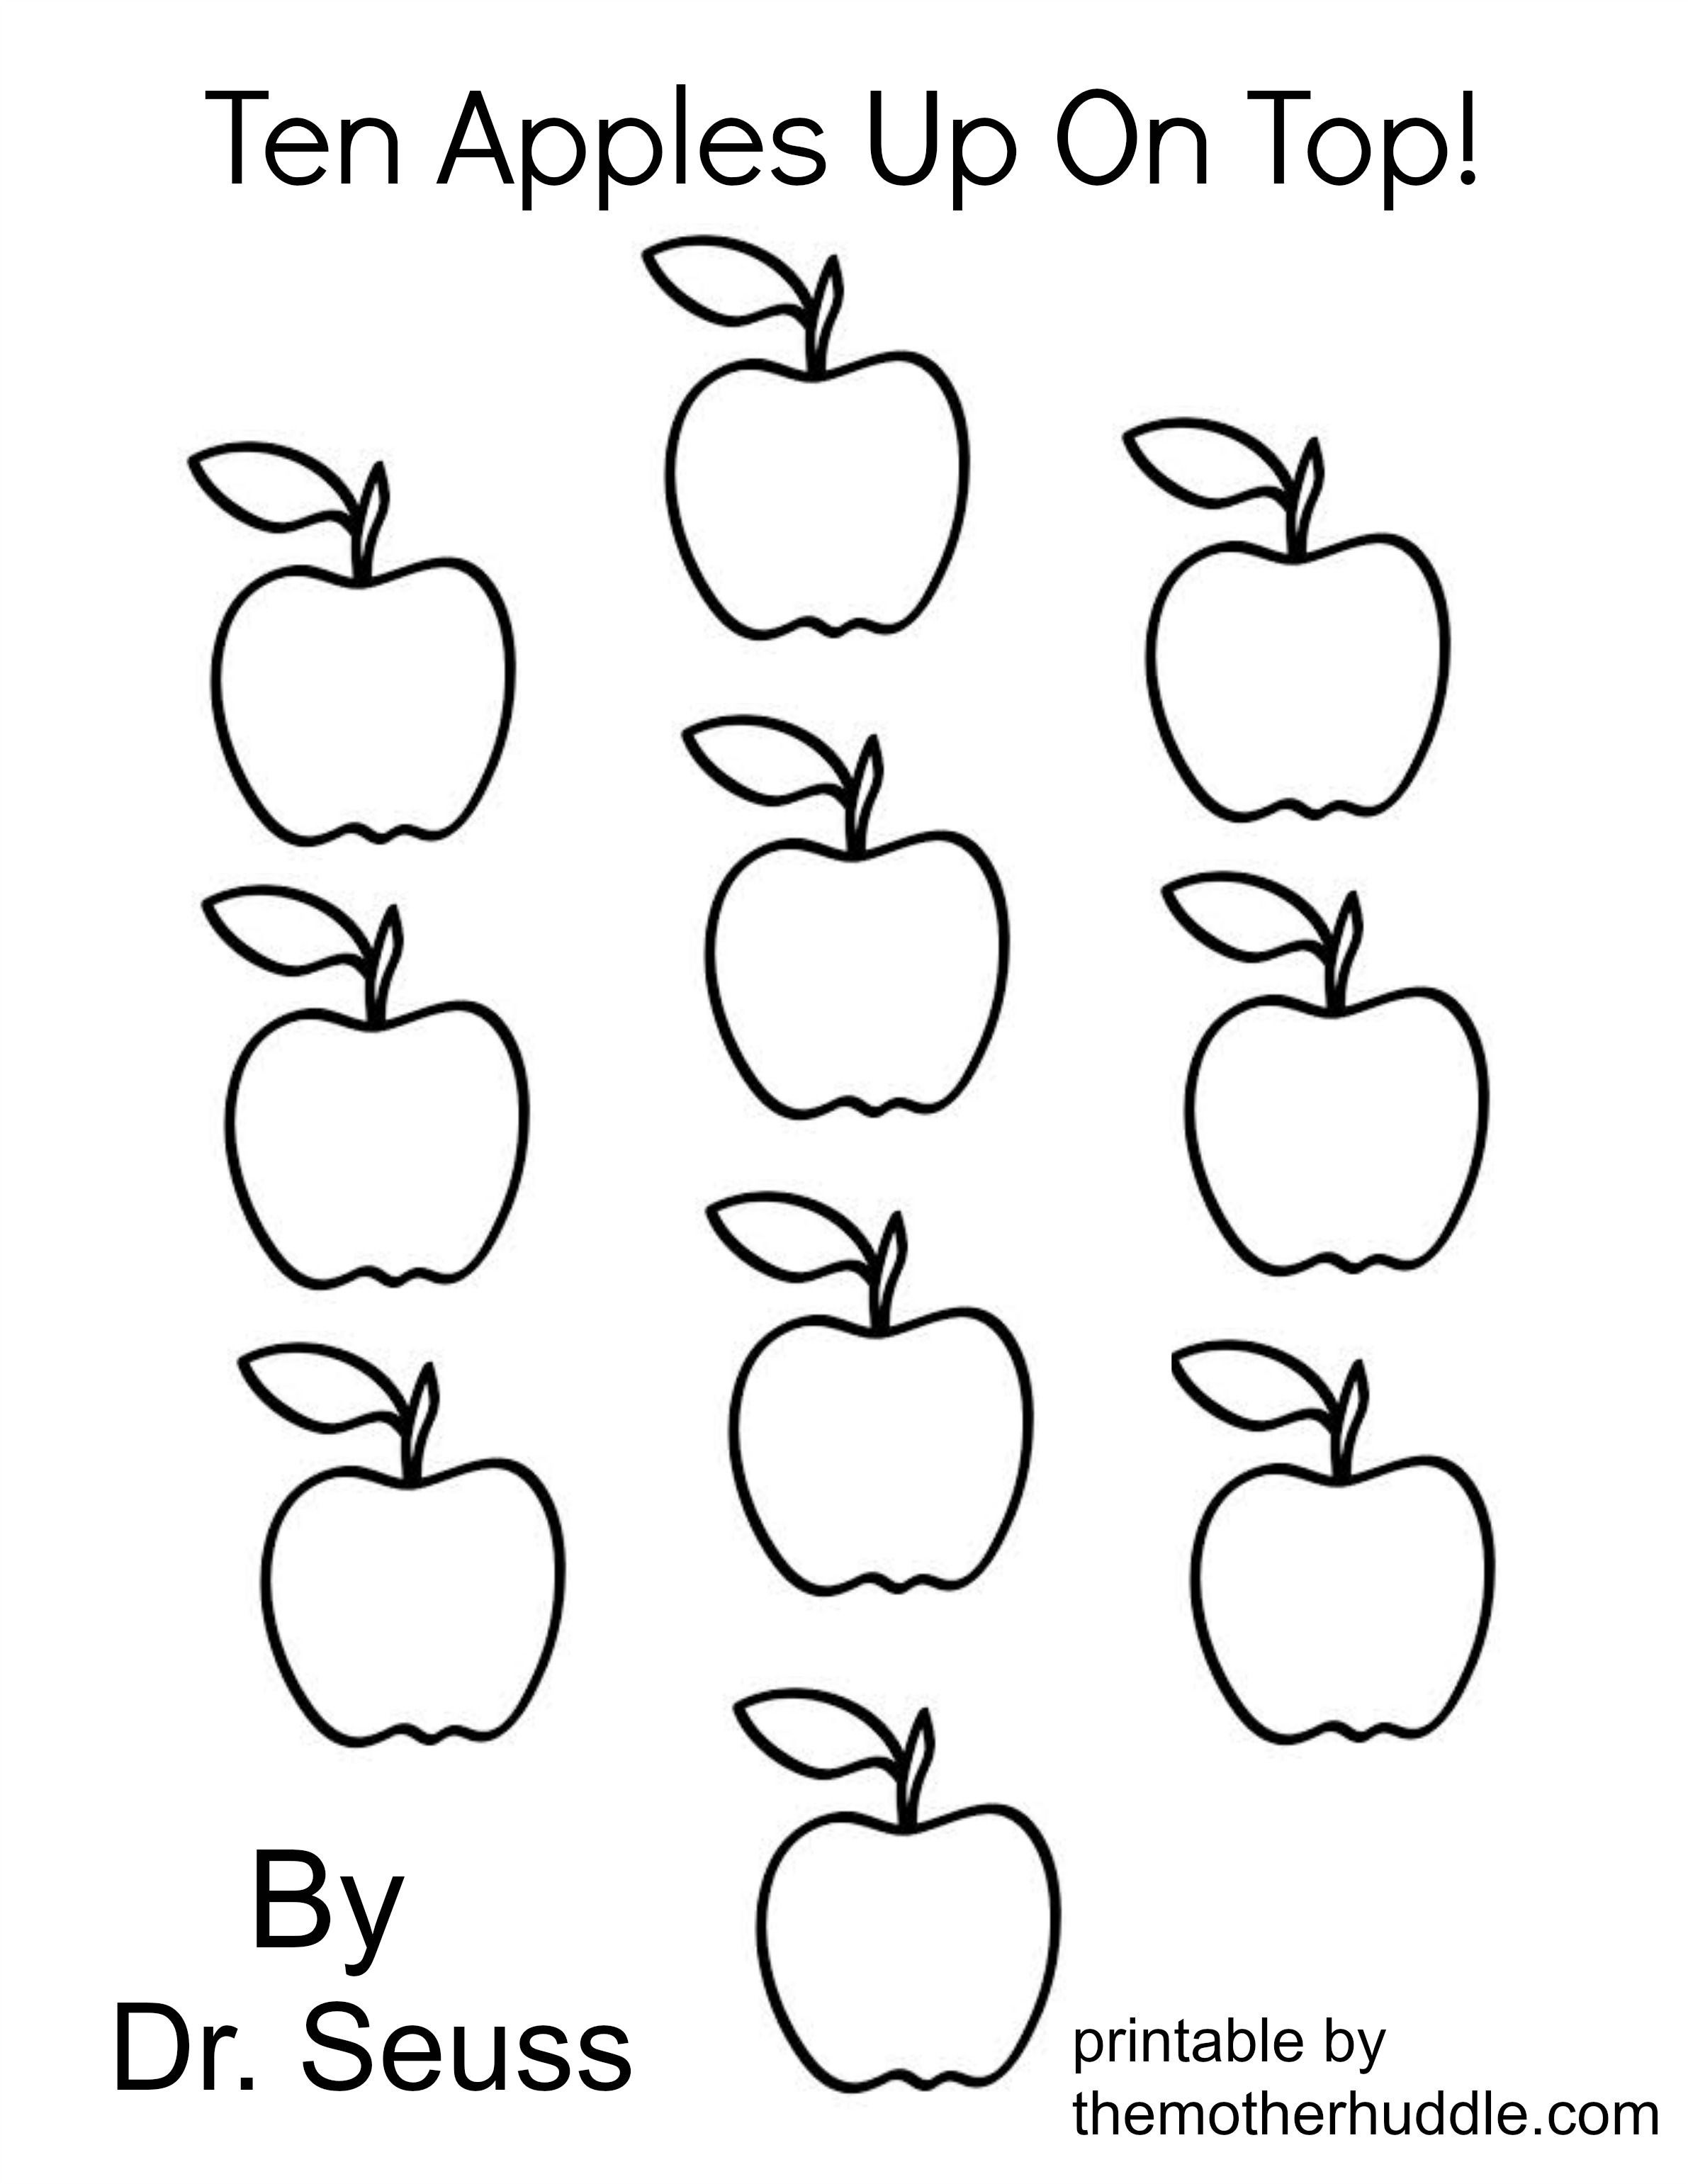 Ten Apples Up On Top Characters Coloring Pages